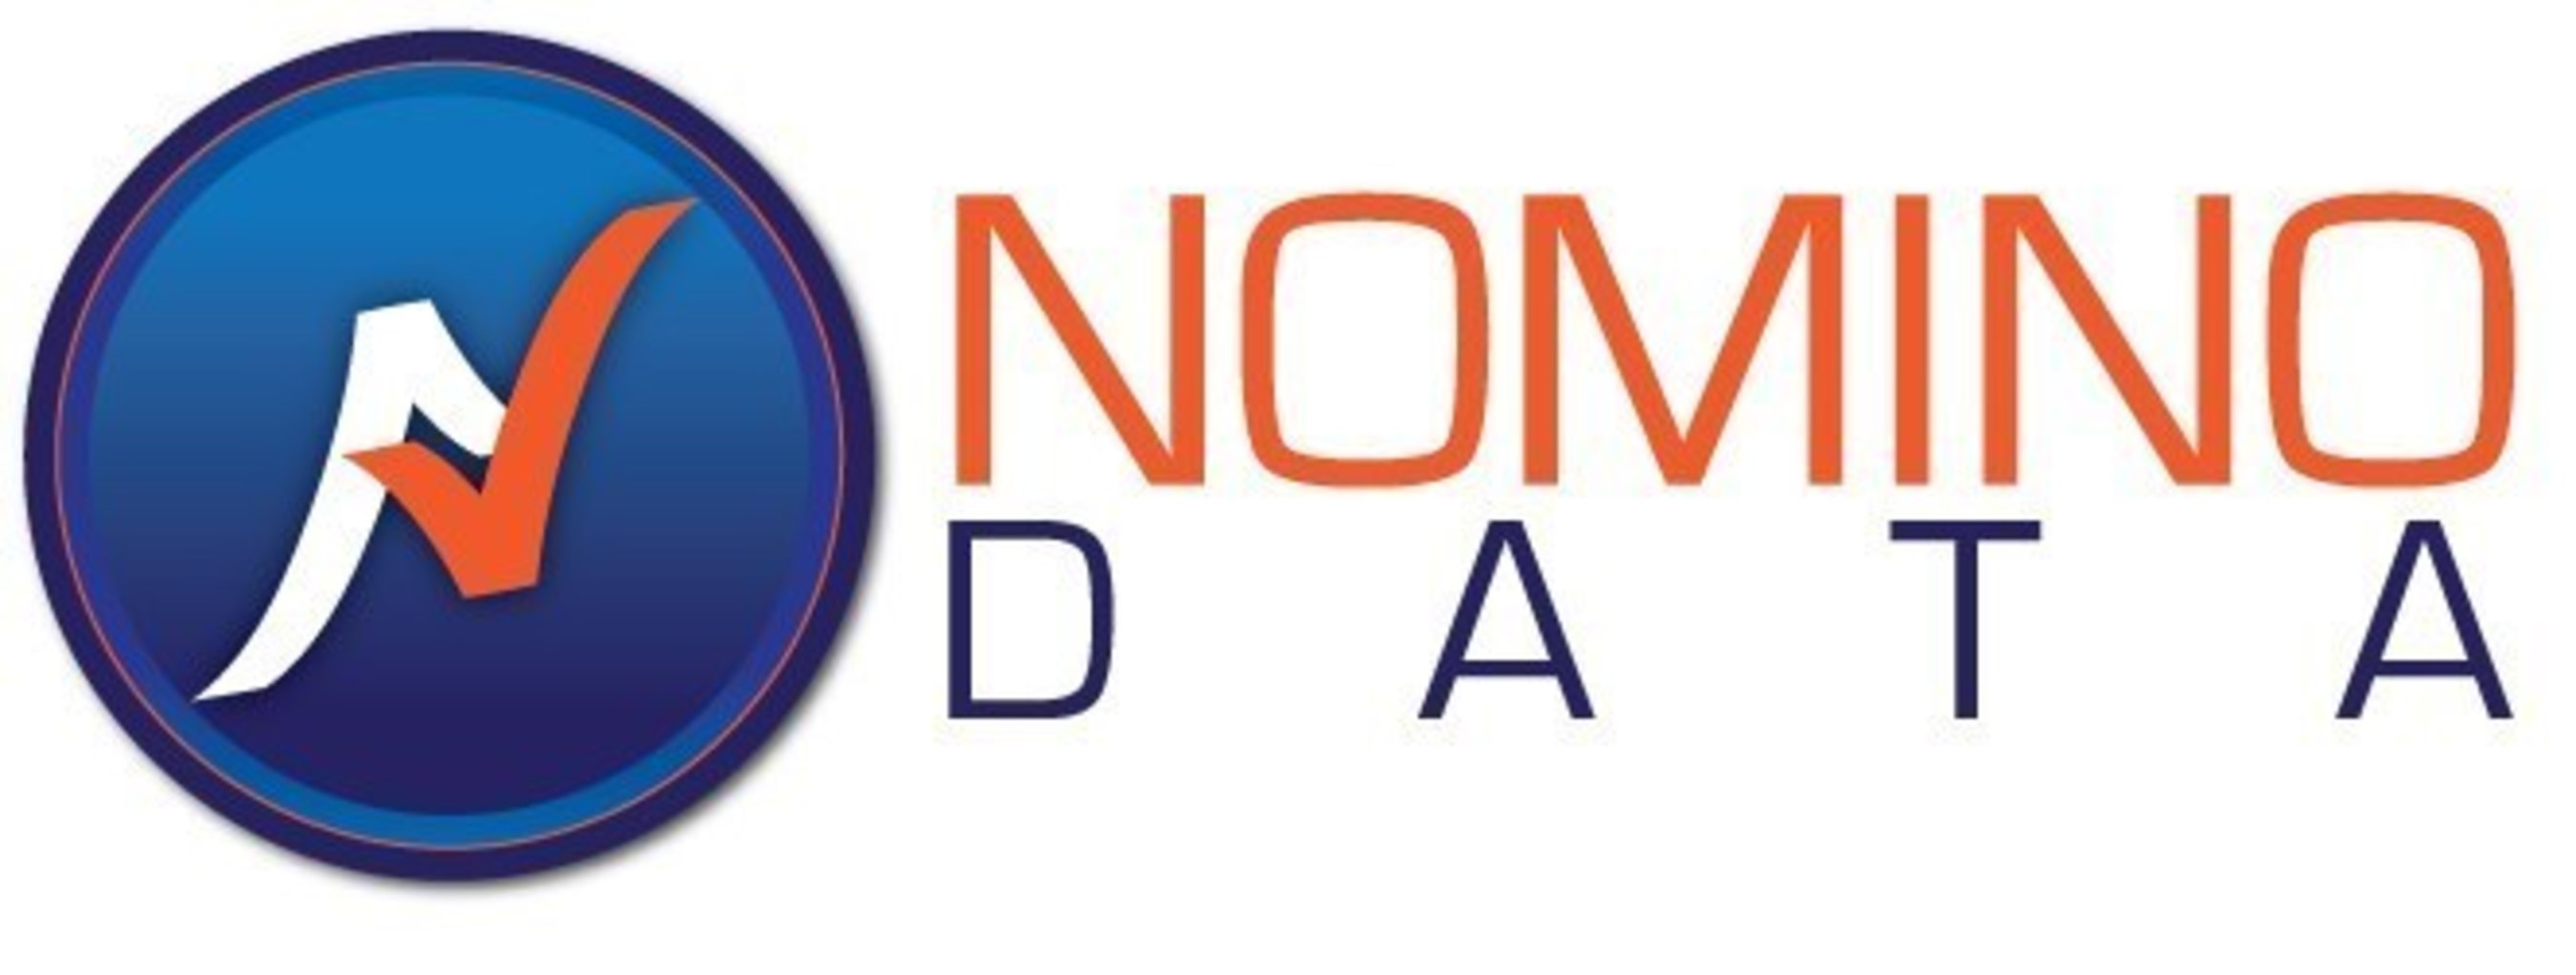 Expert System and NominoData Partner to Deliver Next